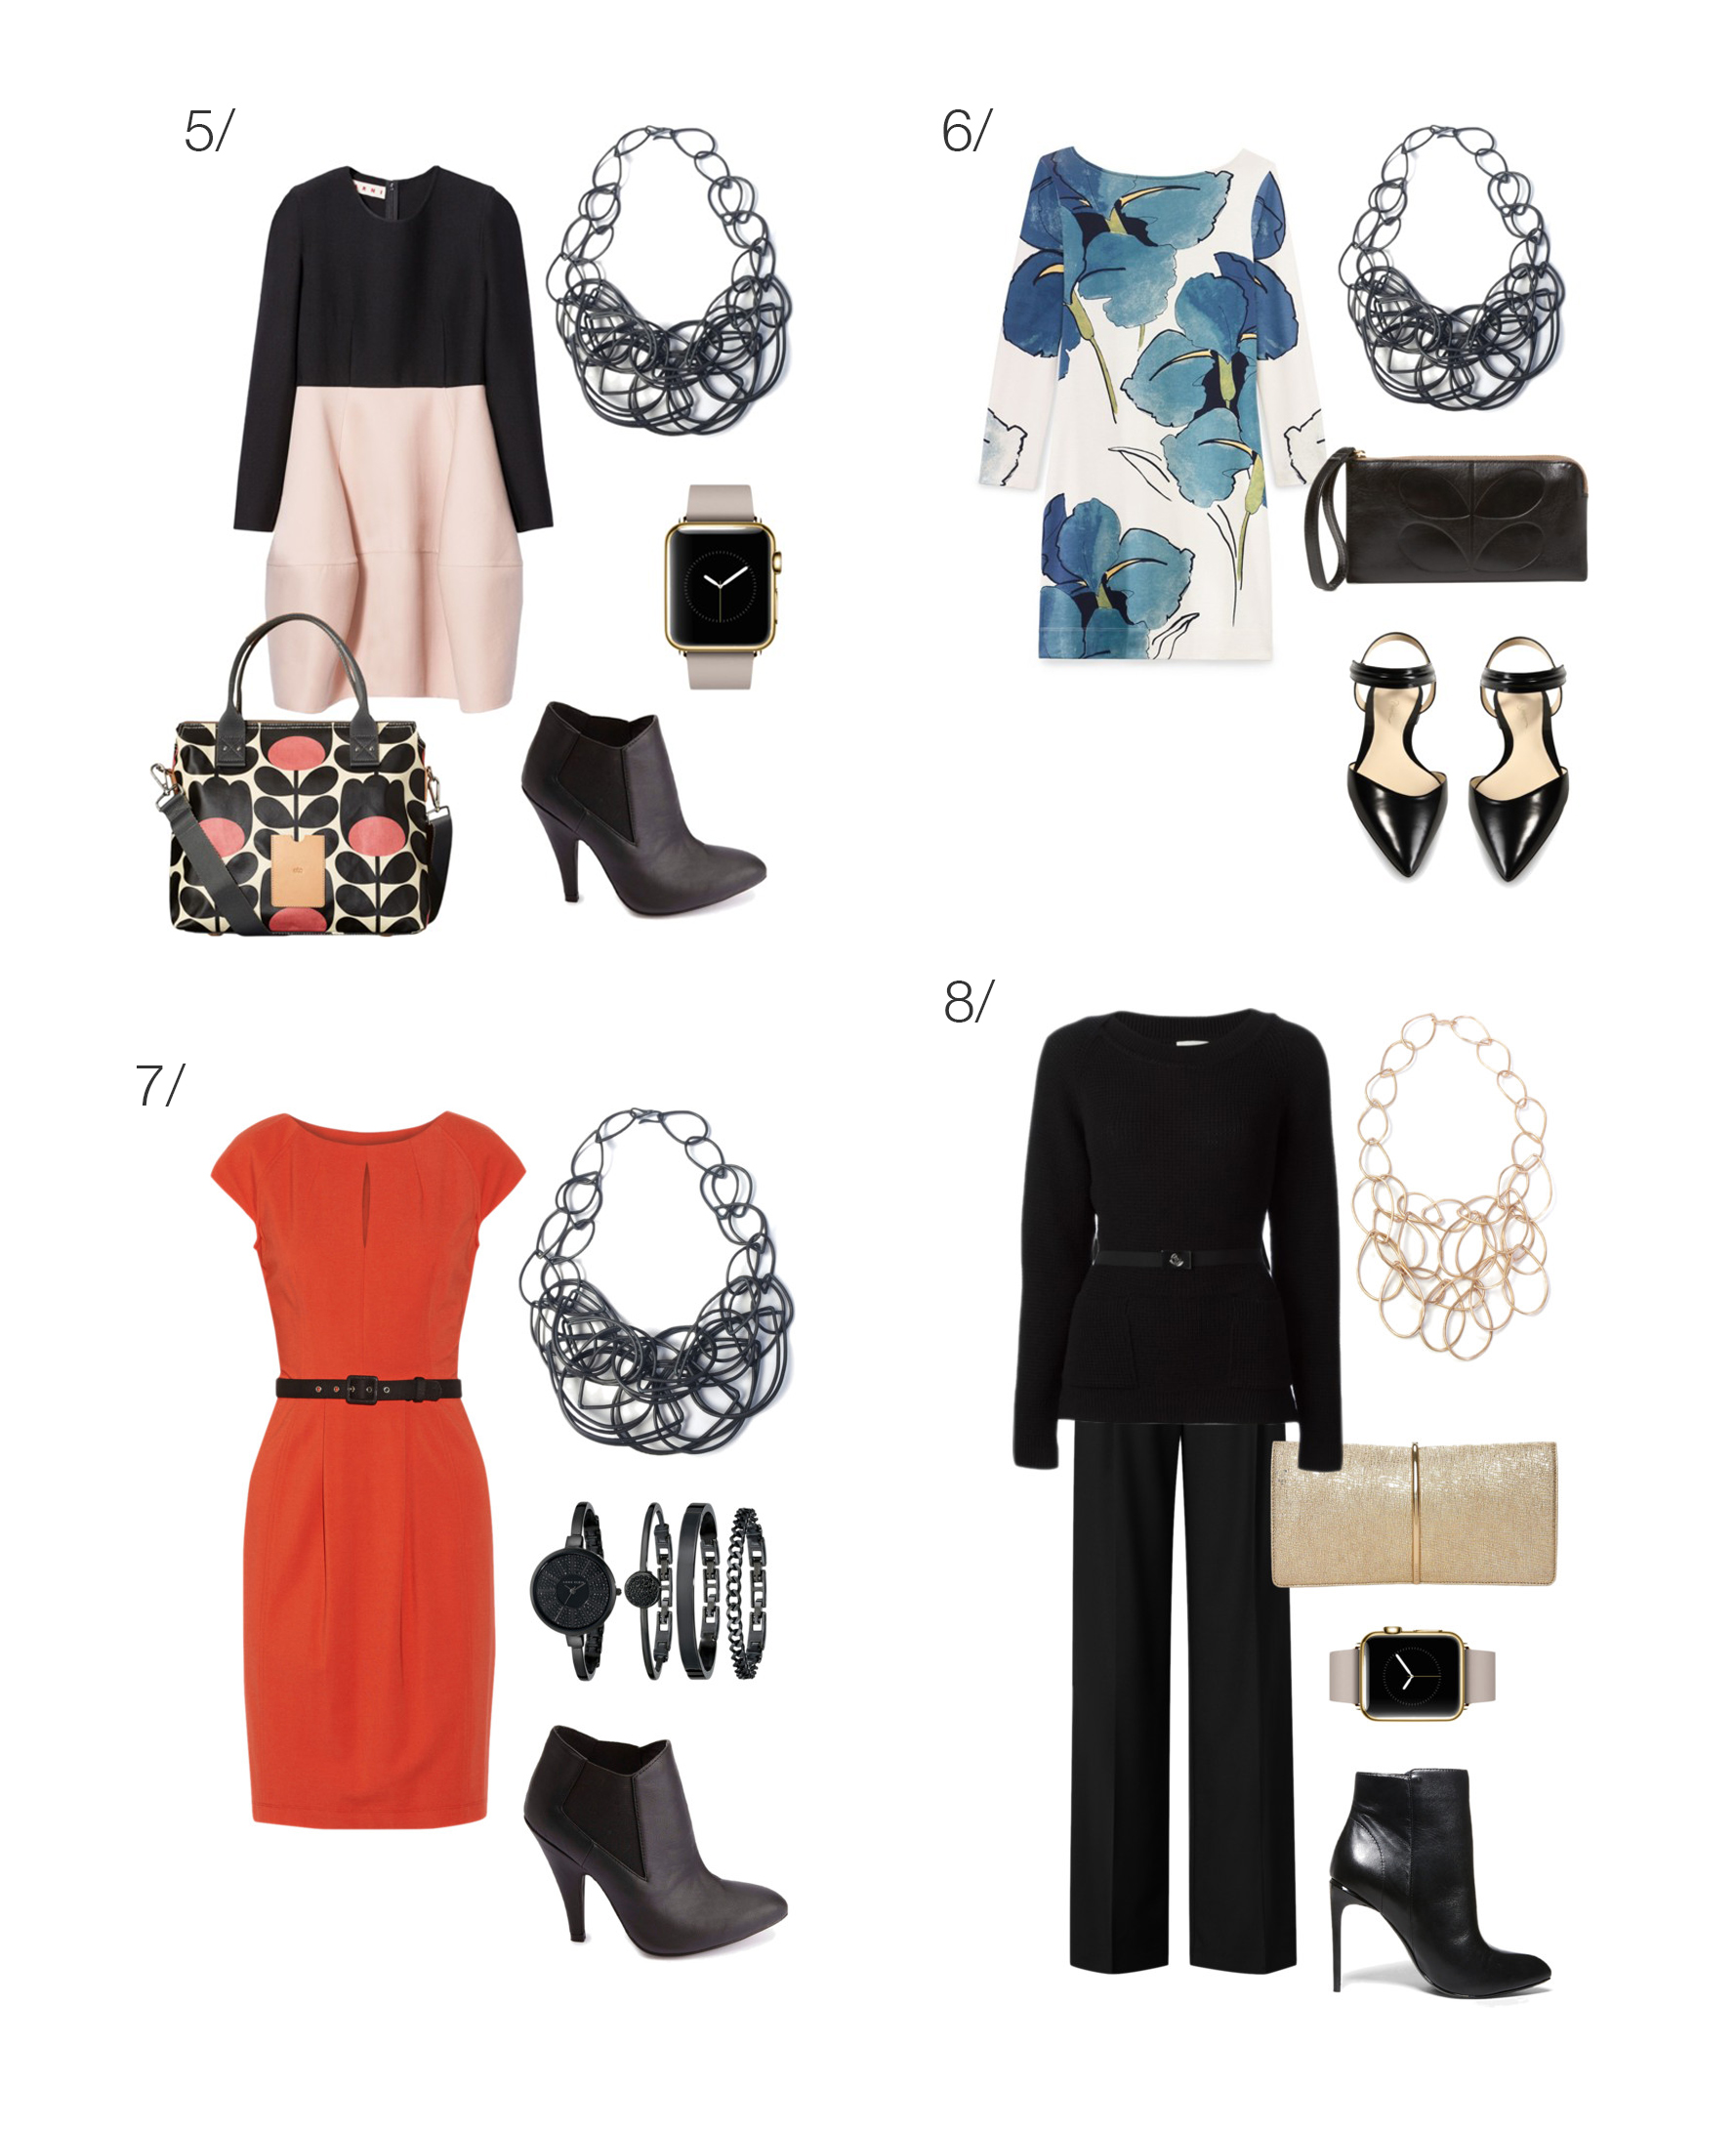 8 ways to wear a statement necklace to work // click for outfit details